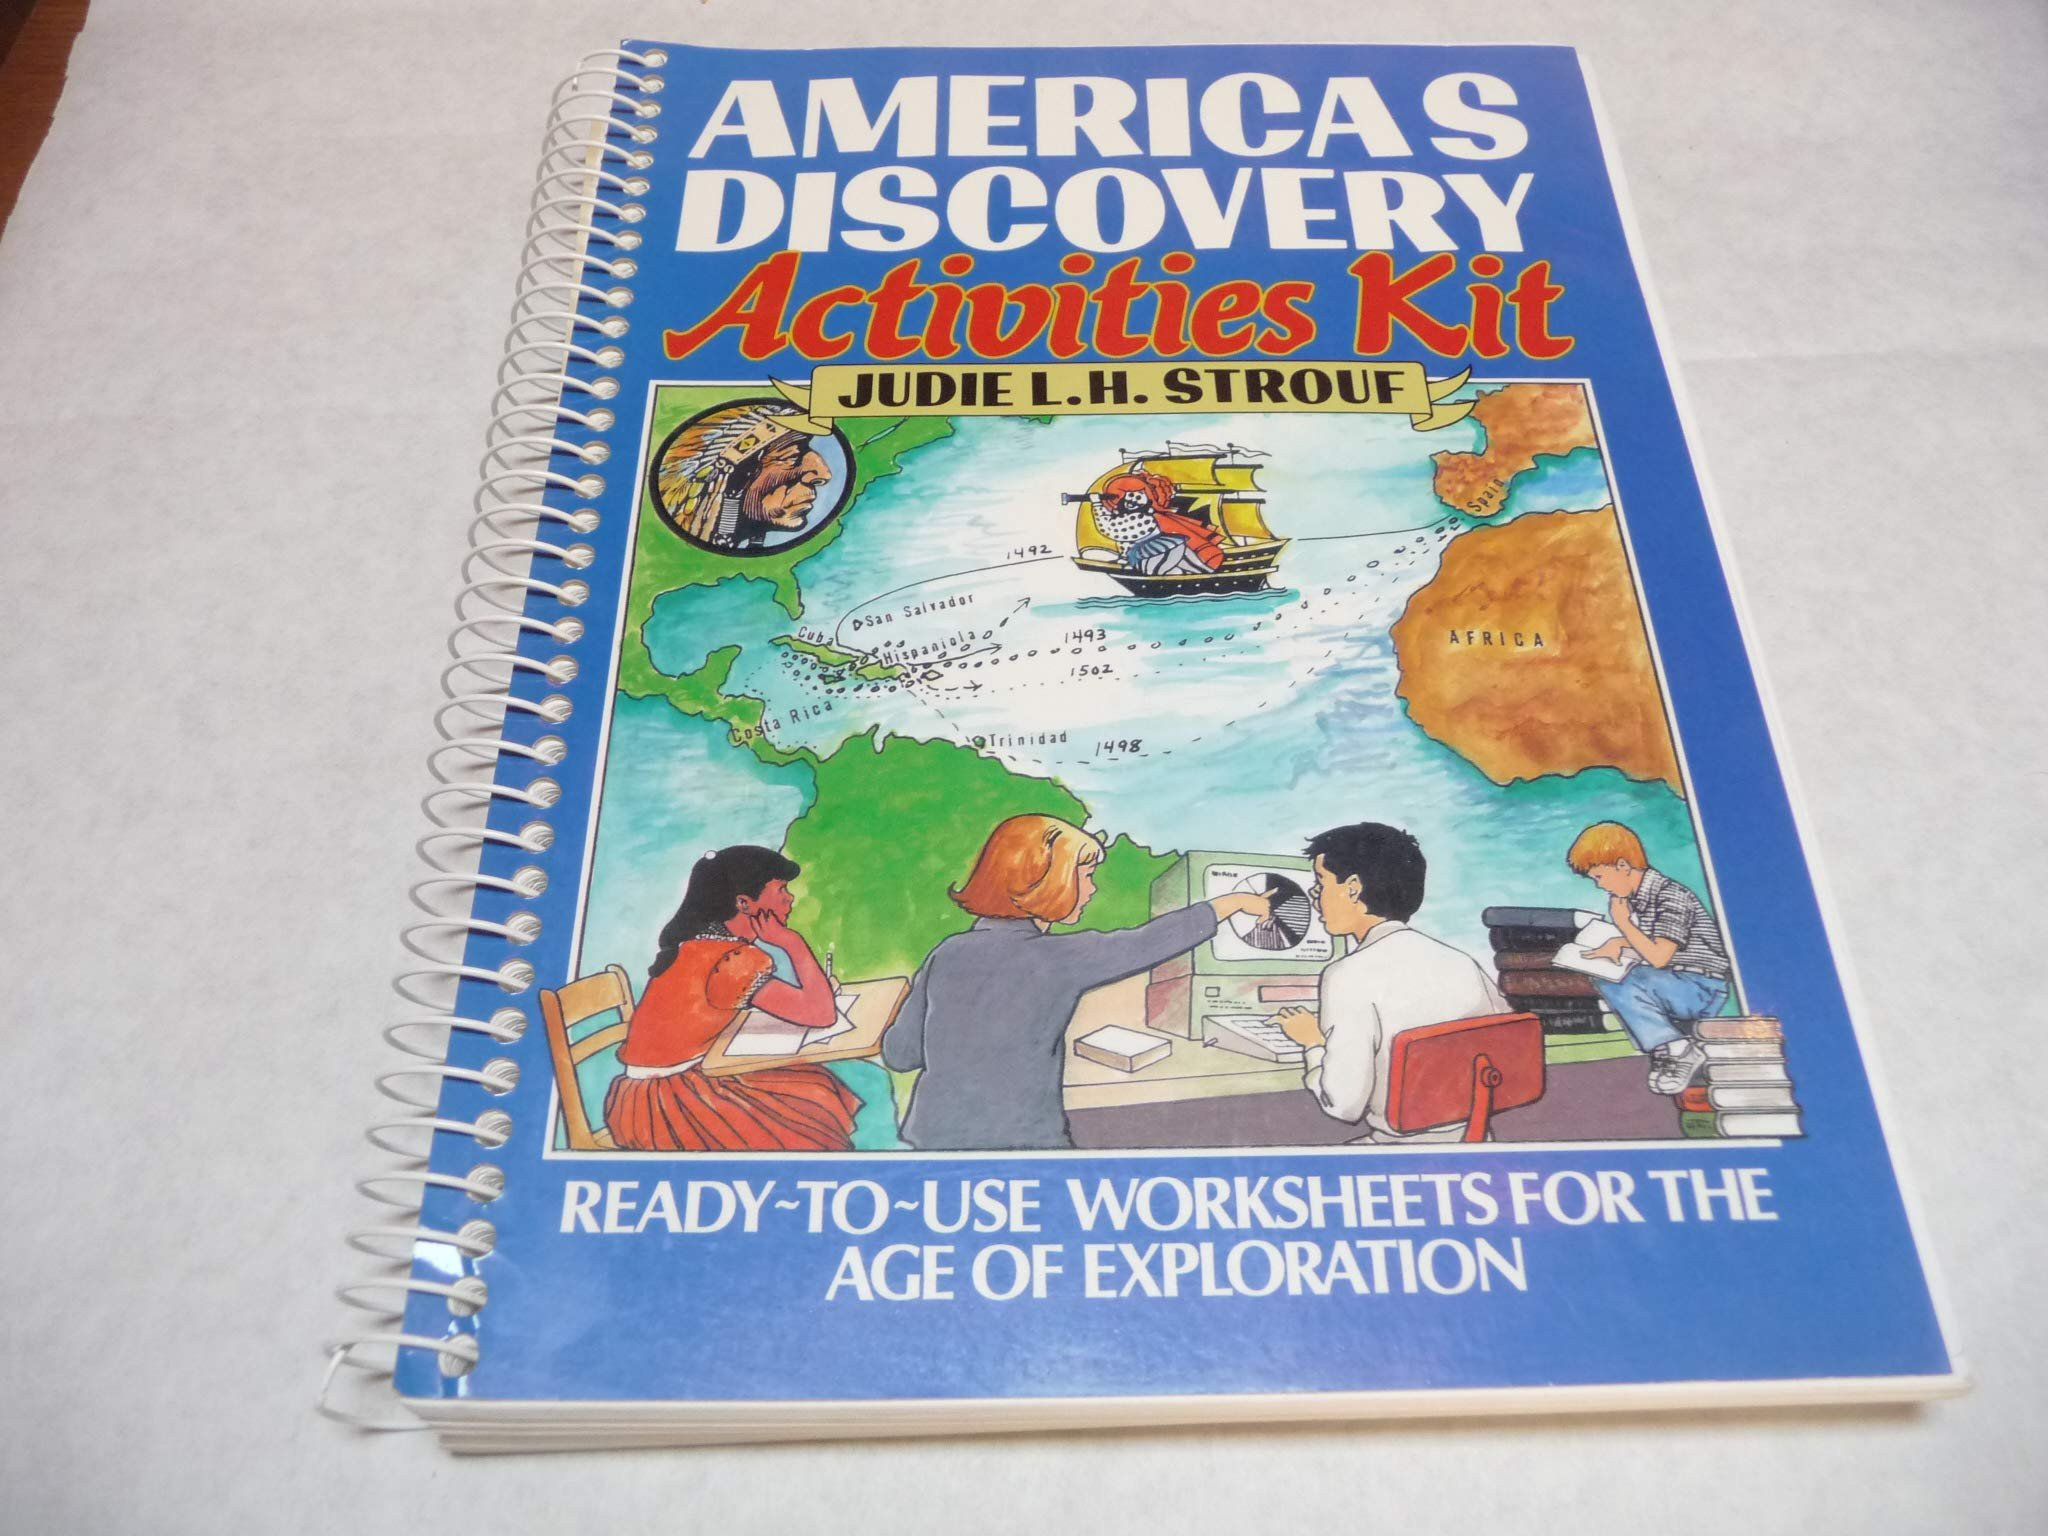 Age Of Exploration Worksheets America S Discovery Activities Kit Ready to Use Worksheets